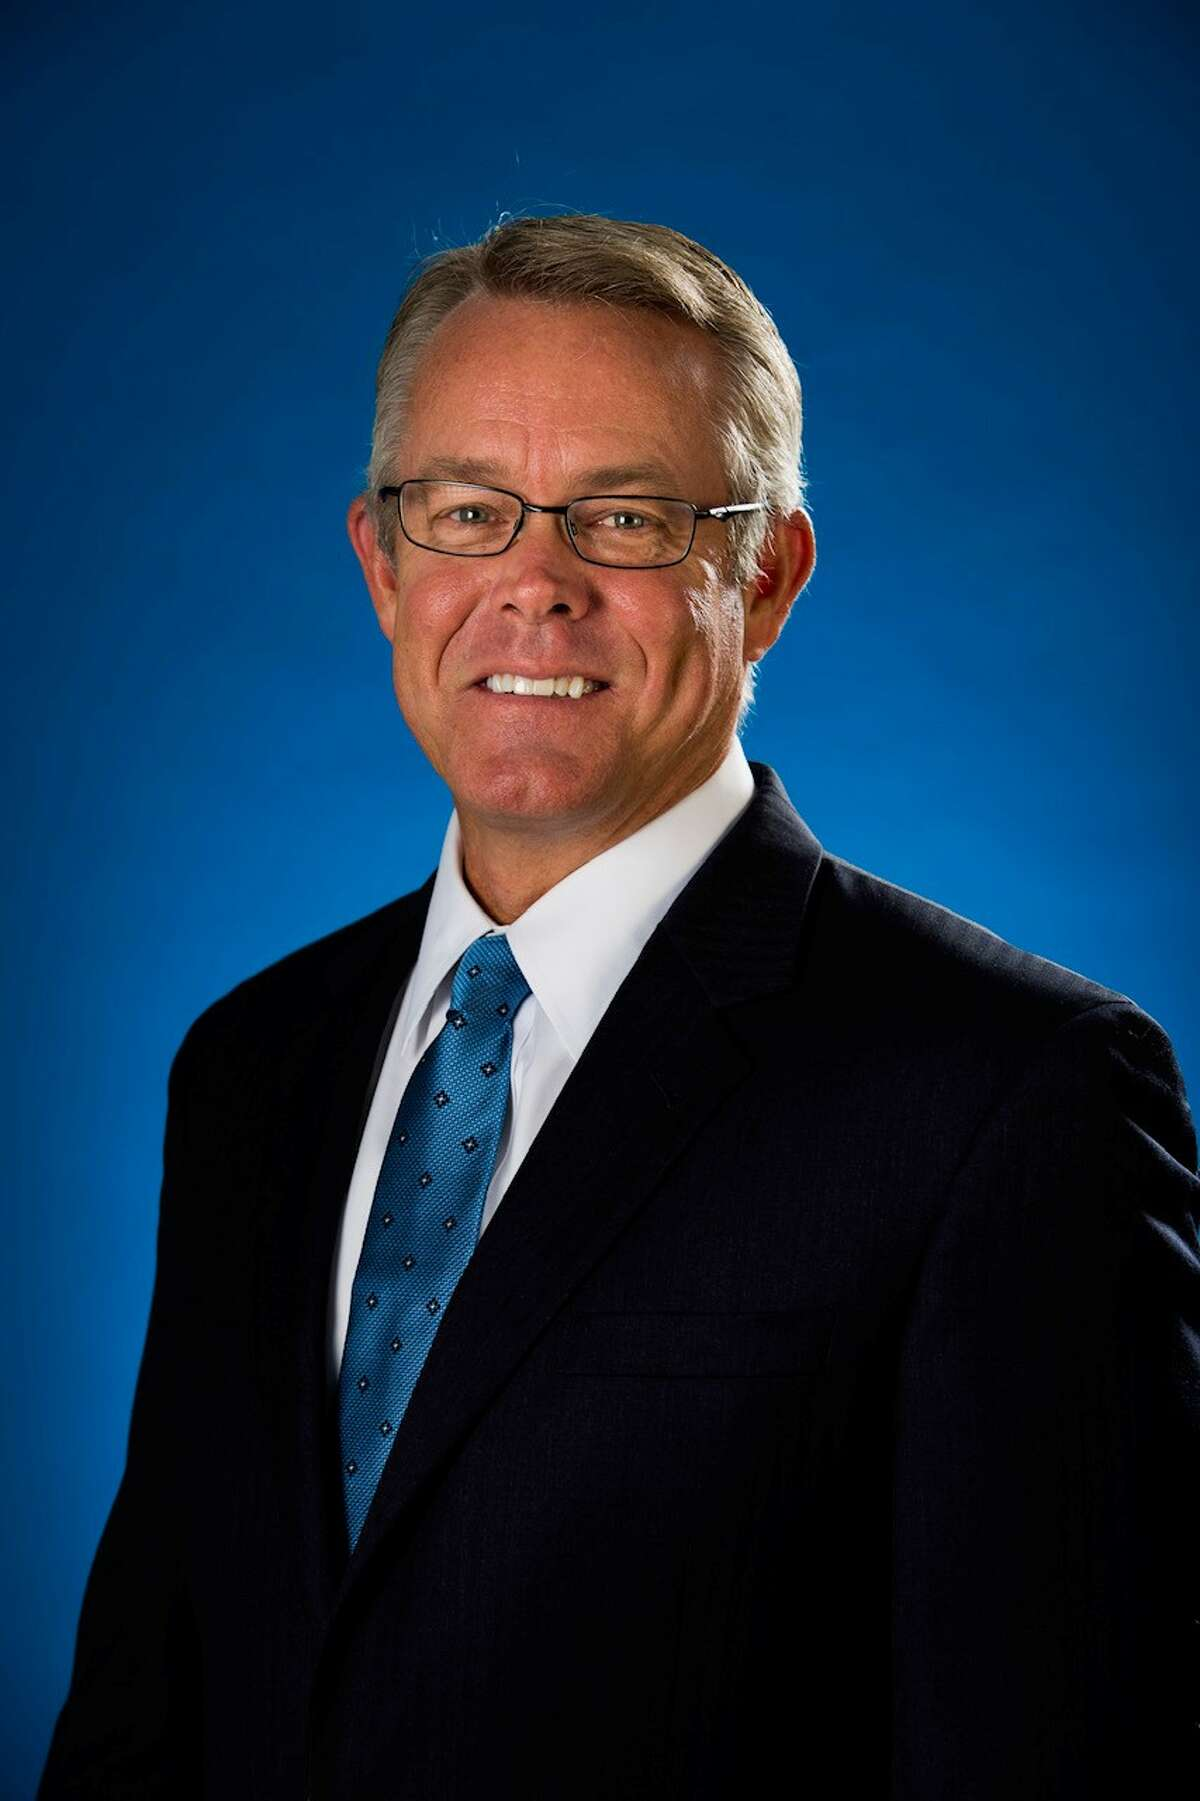 John Stacy is Houston market executive for Regions Bank